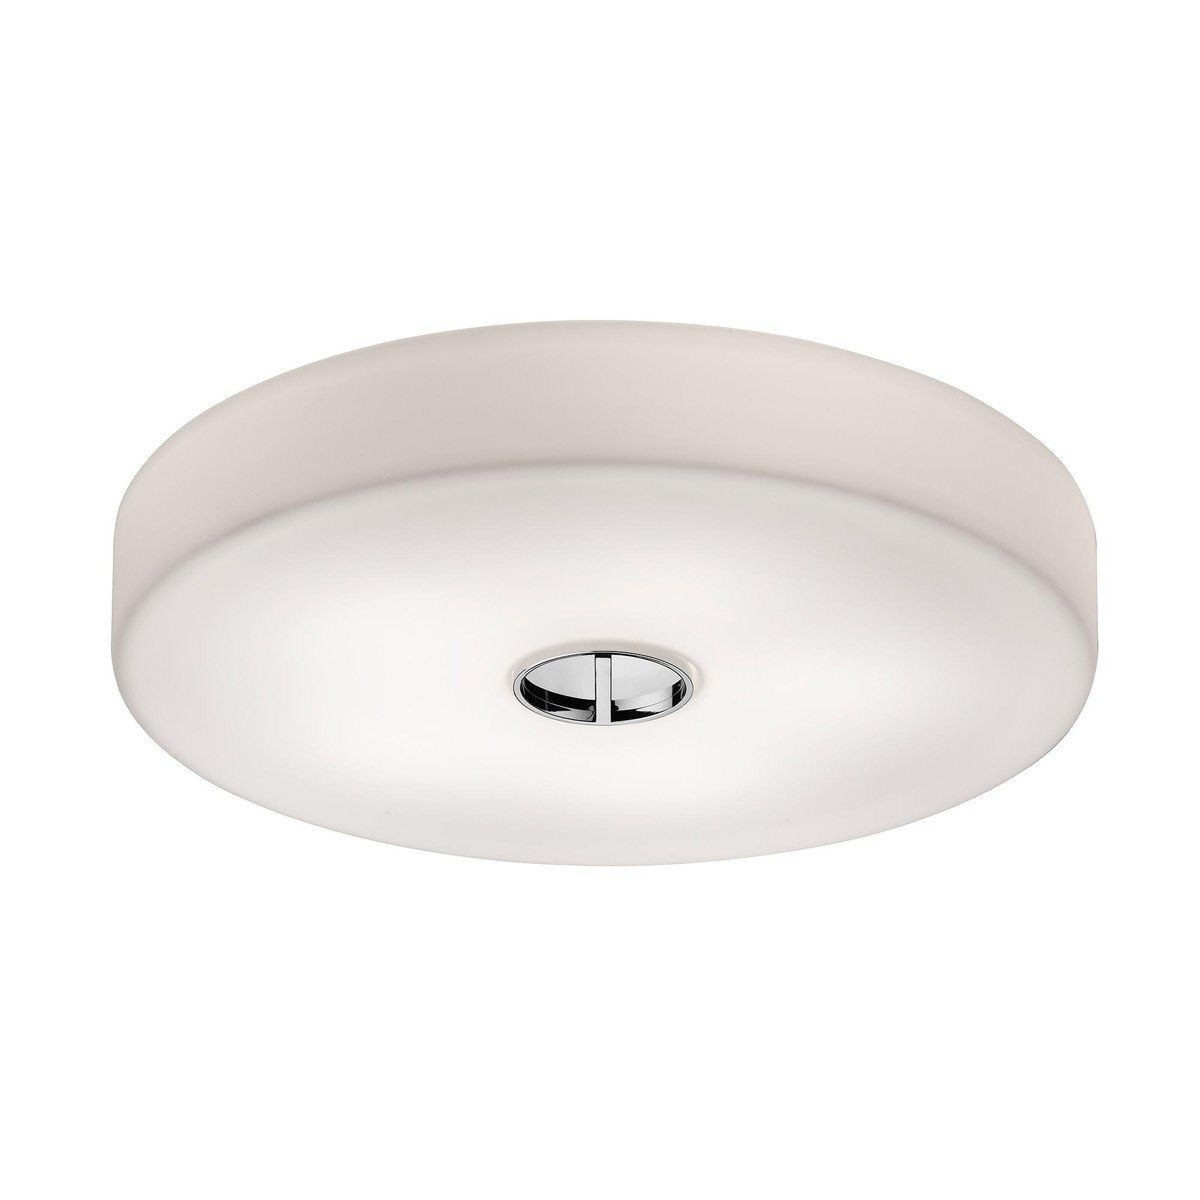 Button wall ceiling lamp flos ambientedirect flos button wall ceiling lamp mozeypictures Image collections